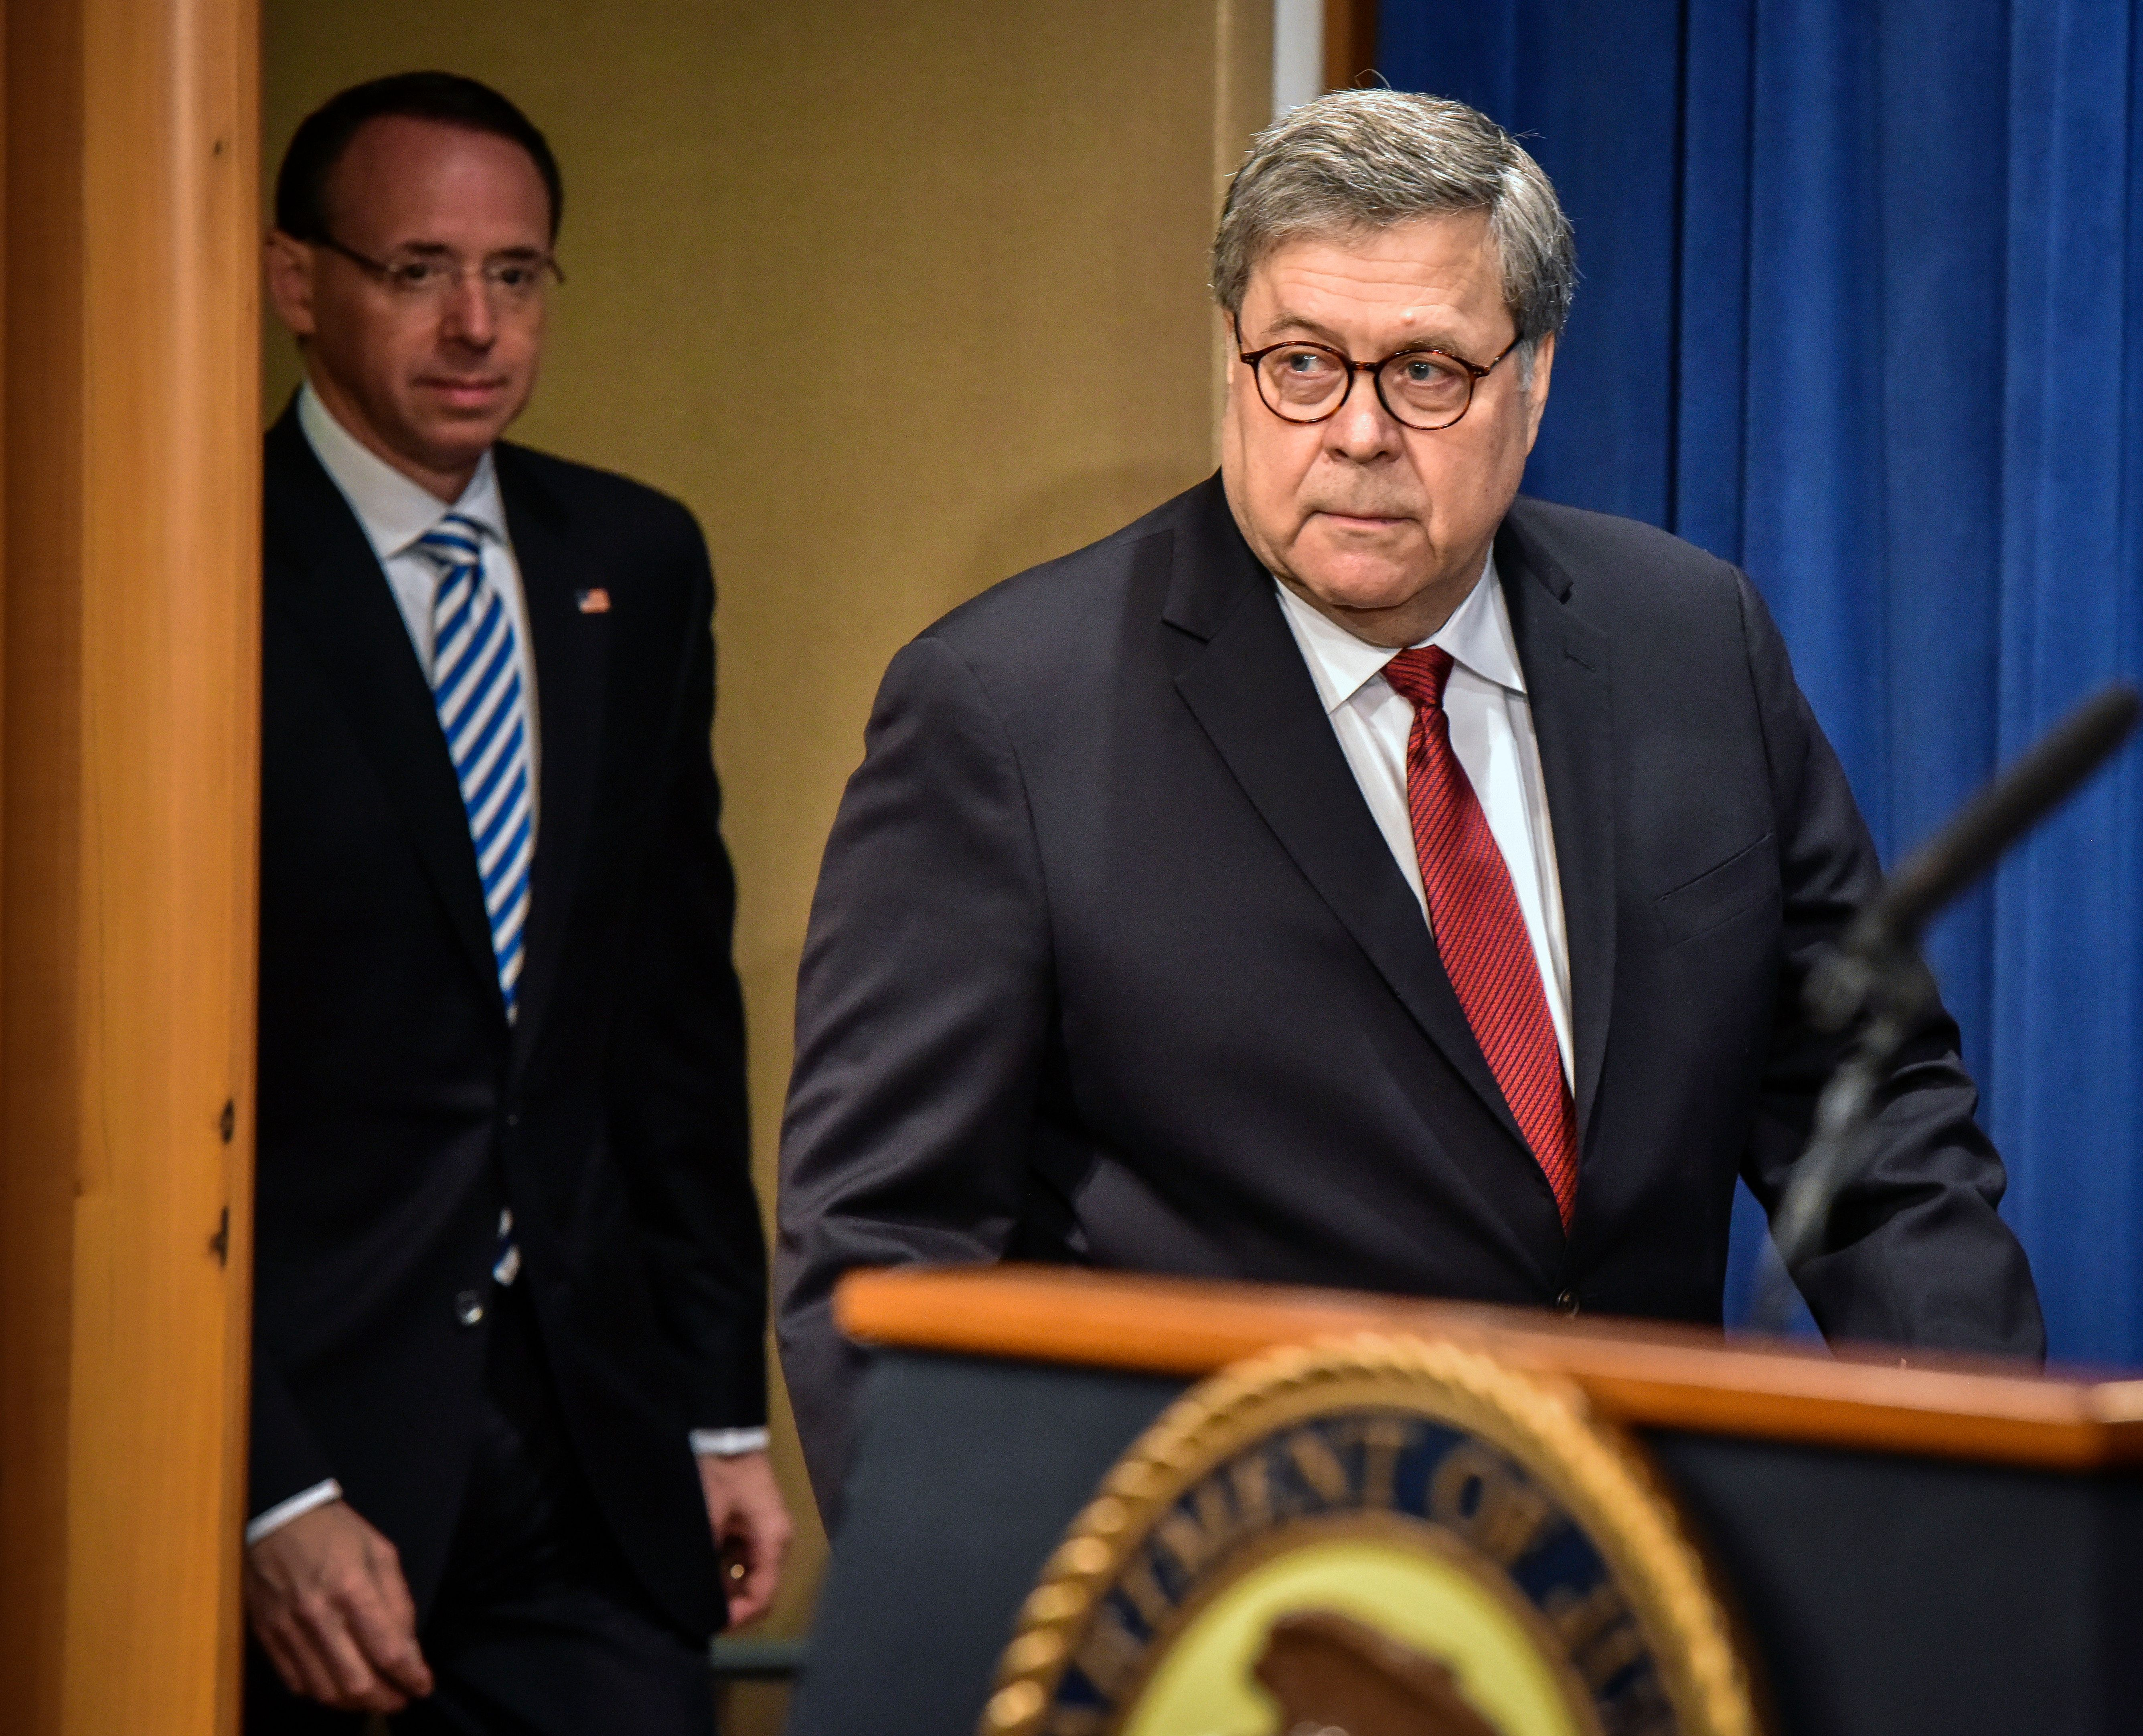 WASHINGTON, DC - APRIL 18: Attorney General William Barr, followed by Deputy AG Rod Rosenstein, left, arrives for a press conference hours before releasing a lightly redacted version of the Mueller report, on April, 18, 2019 in Washington, DC. (Photo by Bill O'Leary/The Washington Post via Getty Images)